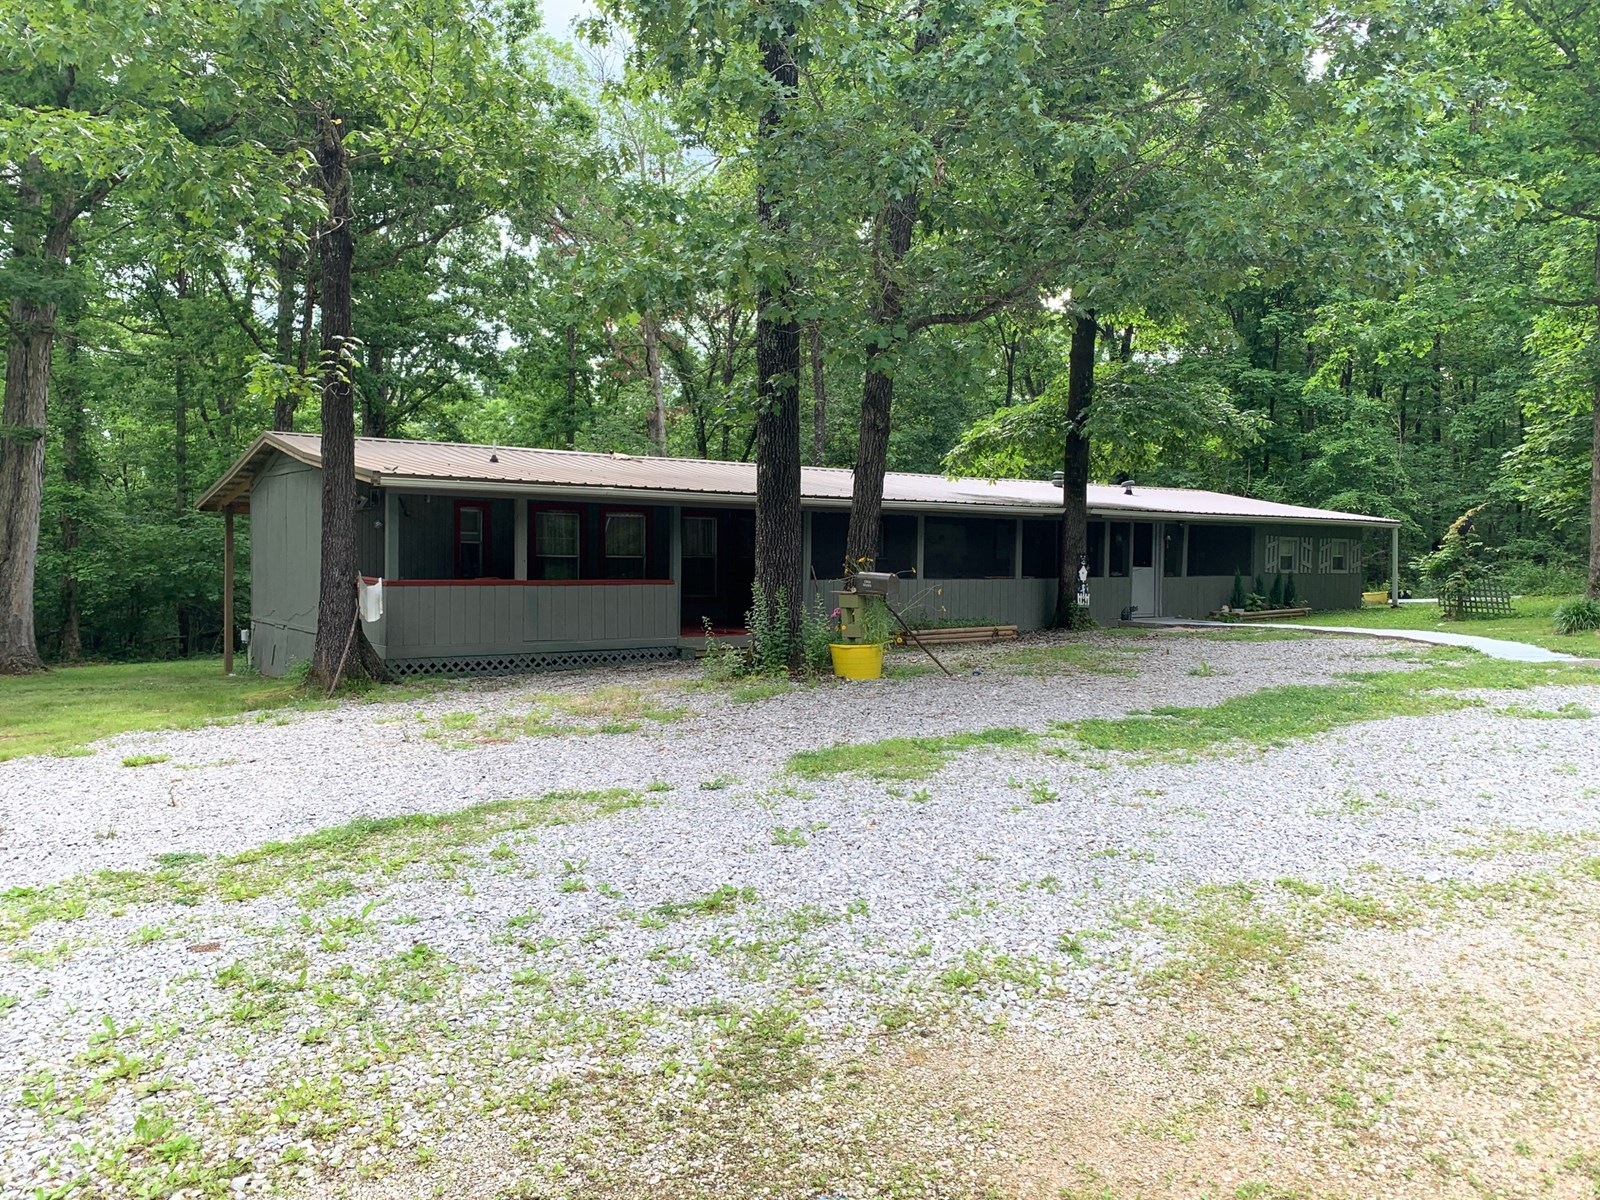 Arkansas Country Home for sale in Ozark foothills Maynard AR